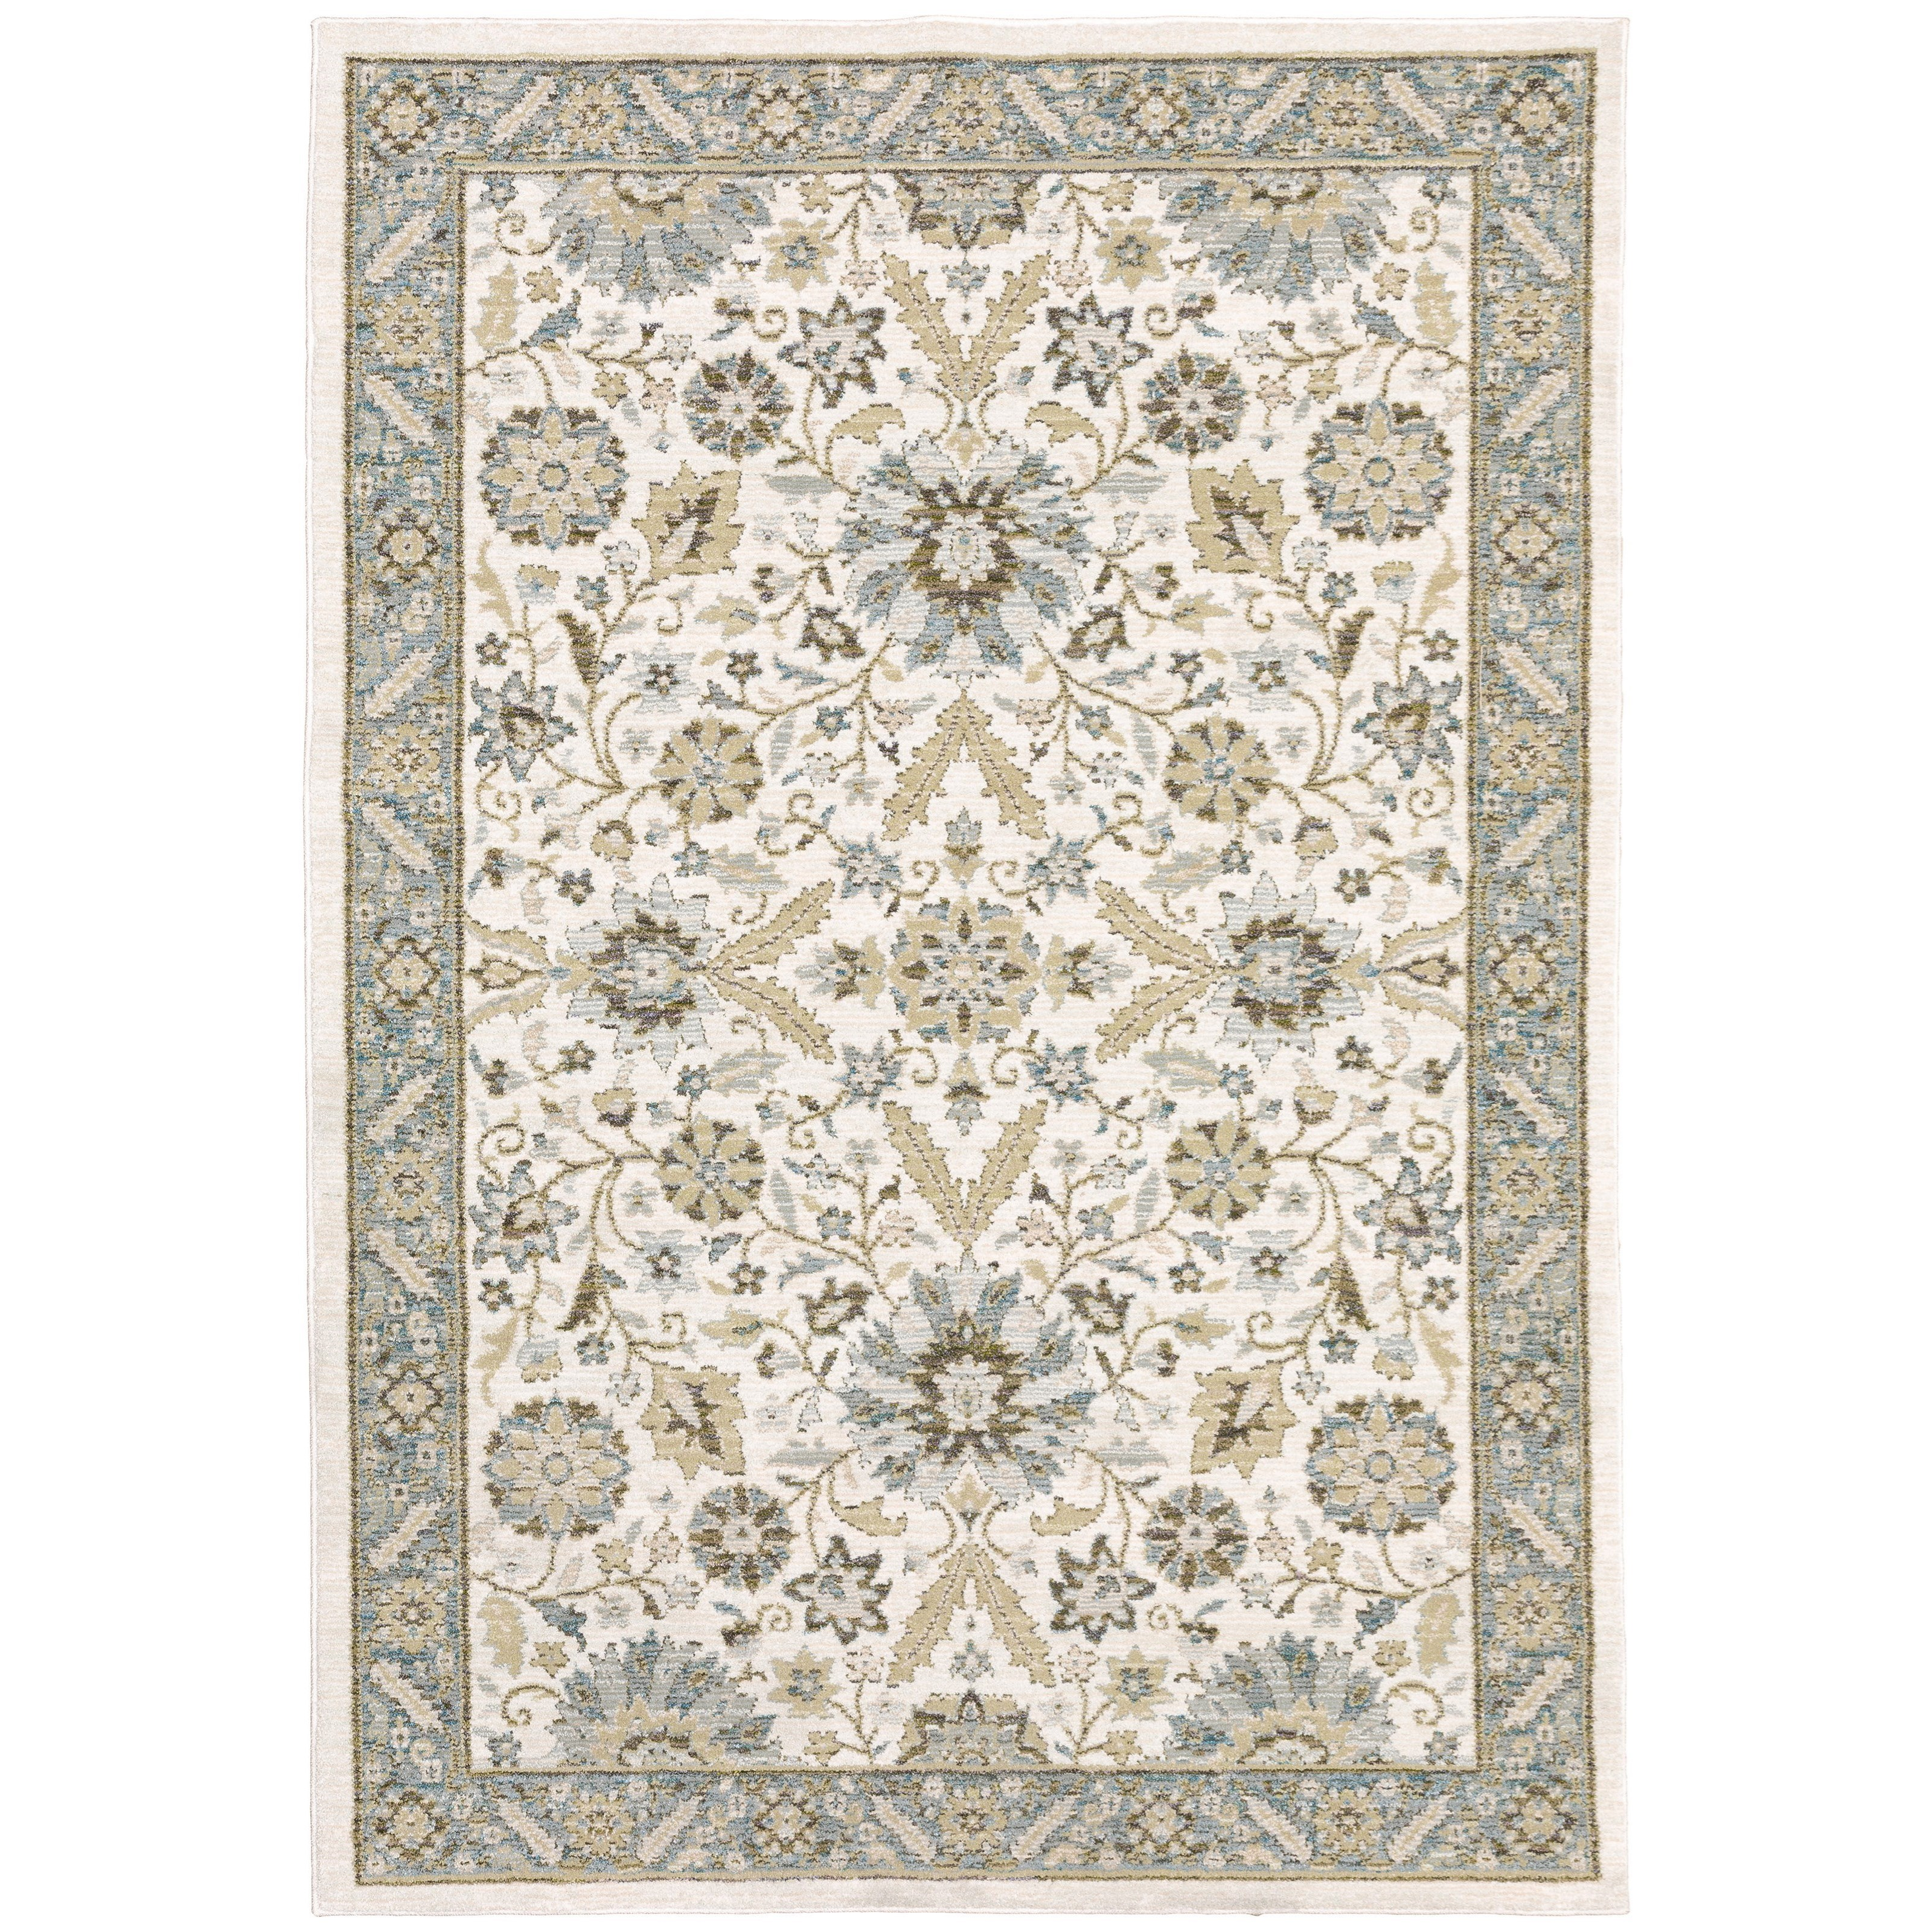 "Andorra 10' 0"" X 13' 2"" Rectangle Rug by Oriental Weavers at Steger's Furniture"